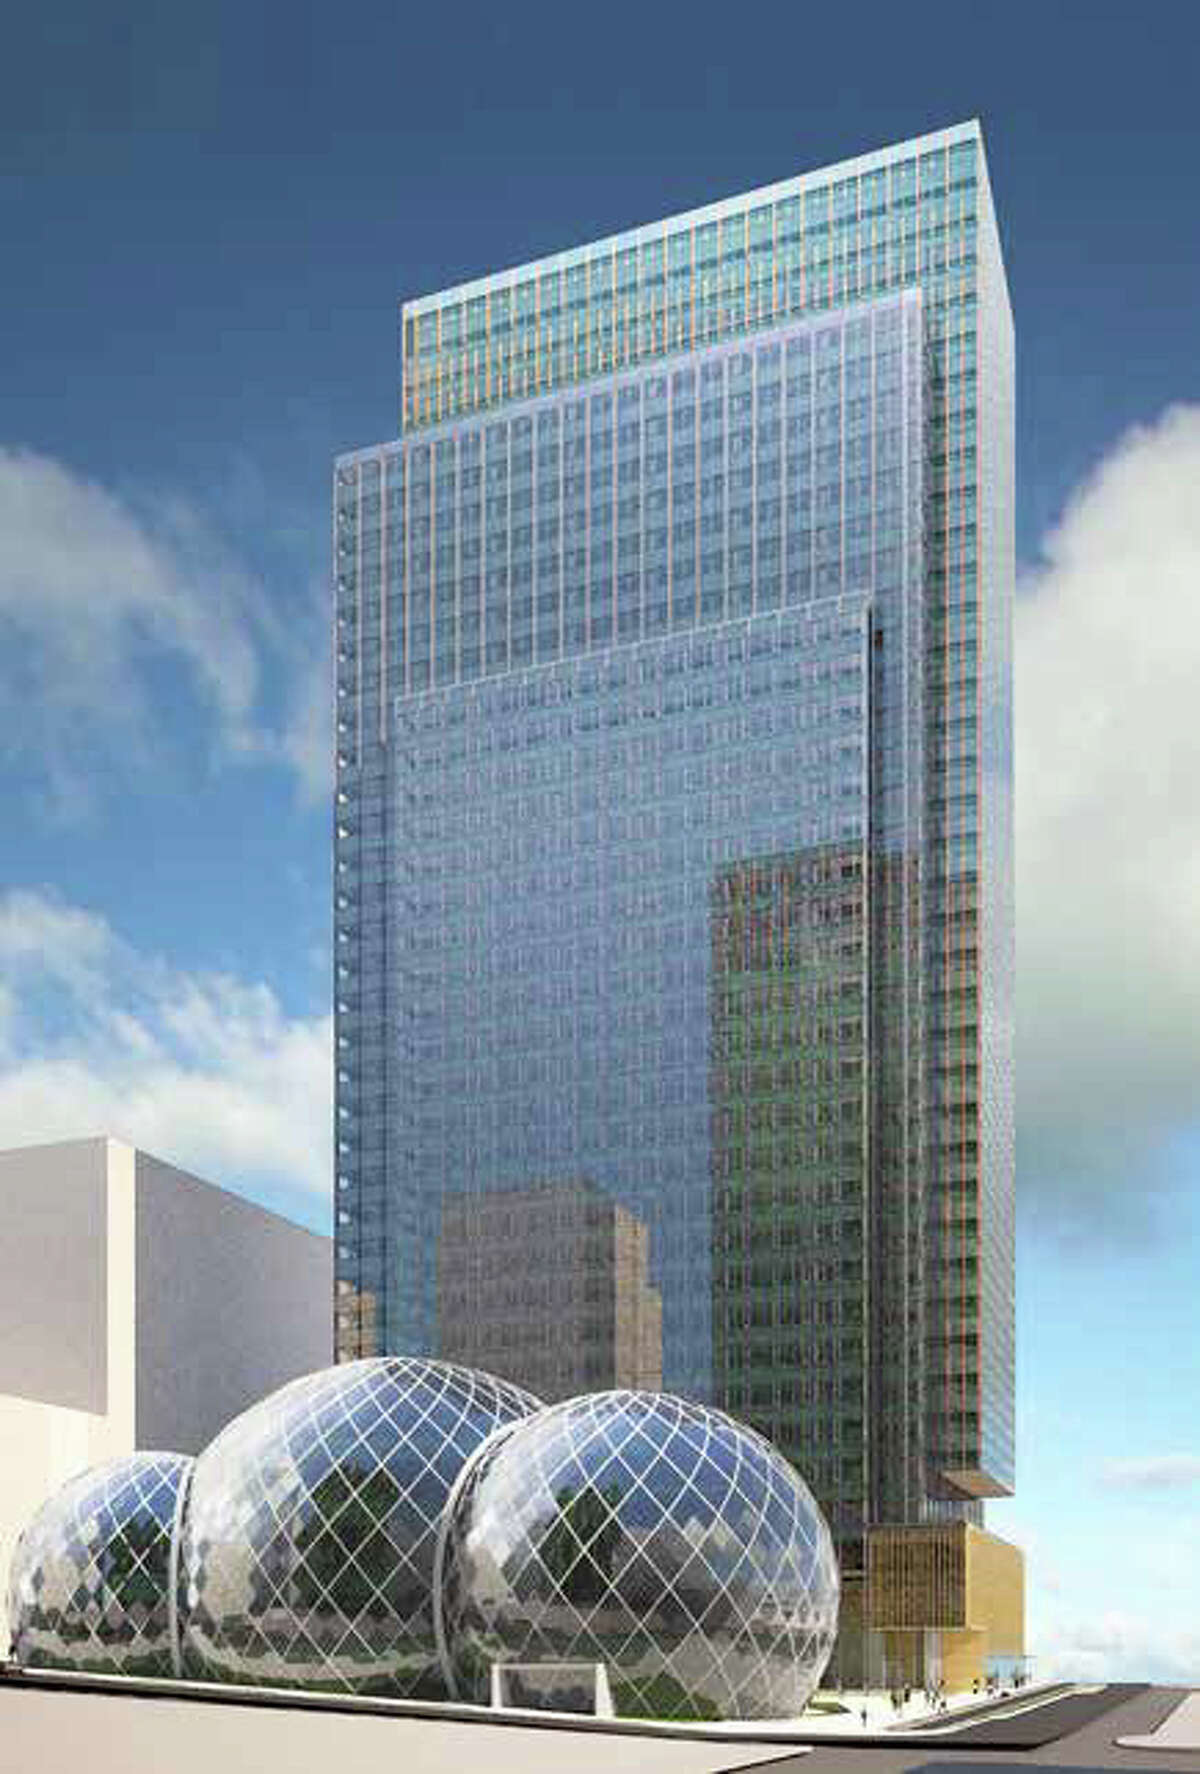 The spheres would be up to five stories high and have about 65,000 square feet of space. Here's the spheres next to one of Amazon's planned towers.